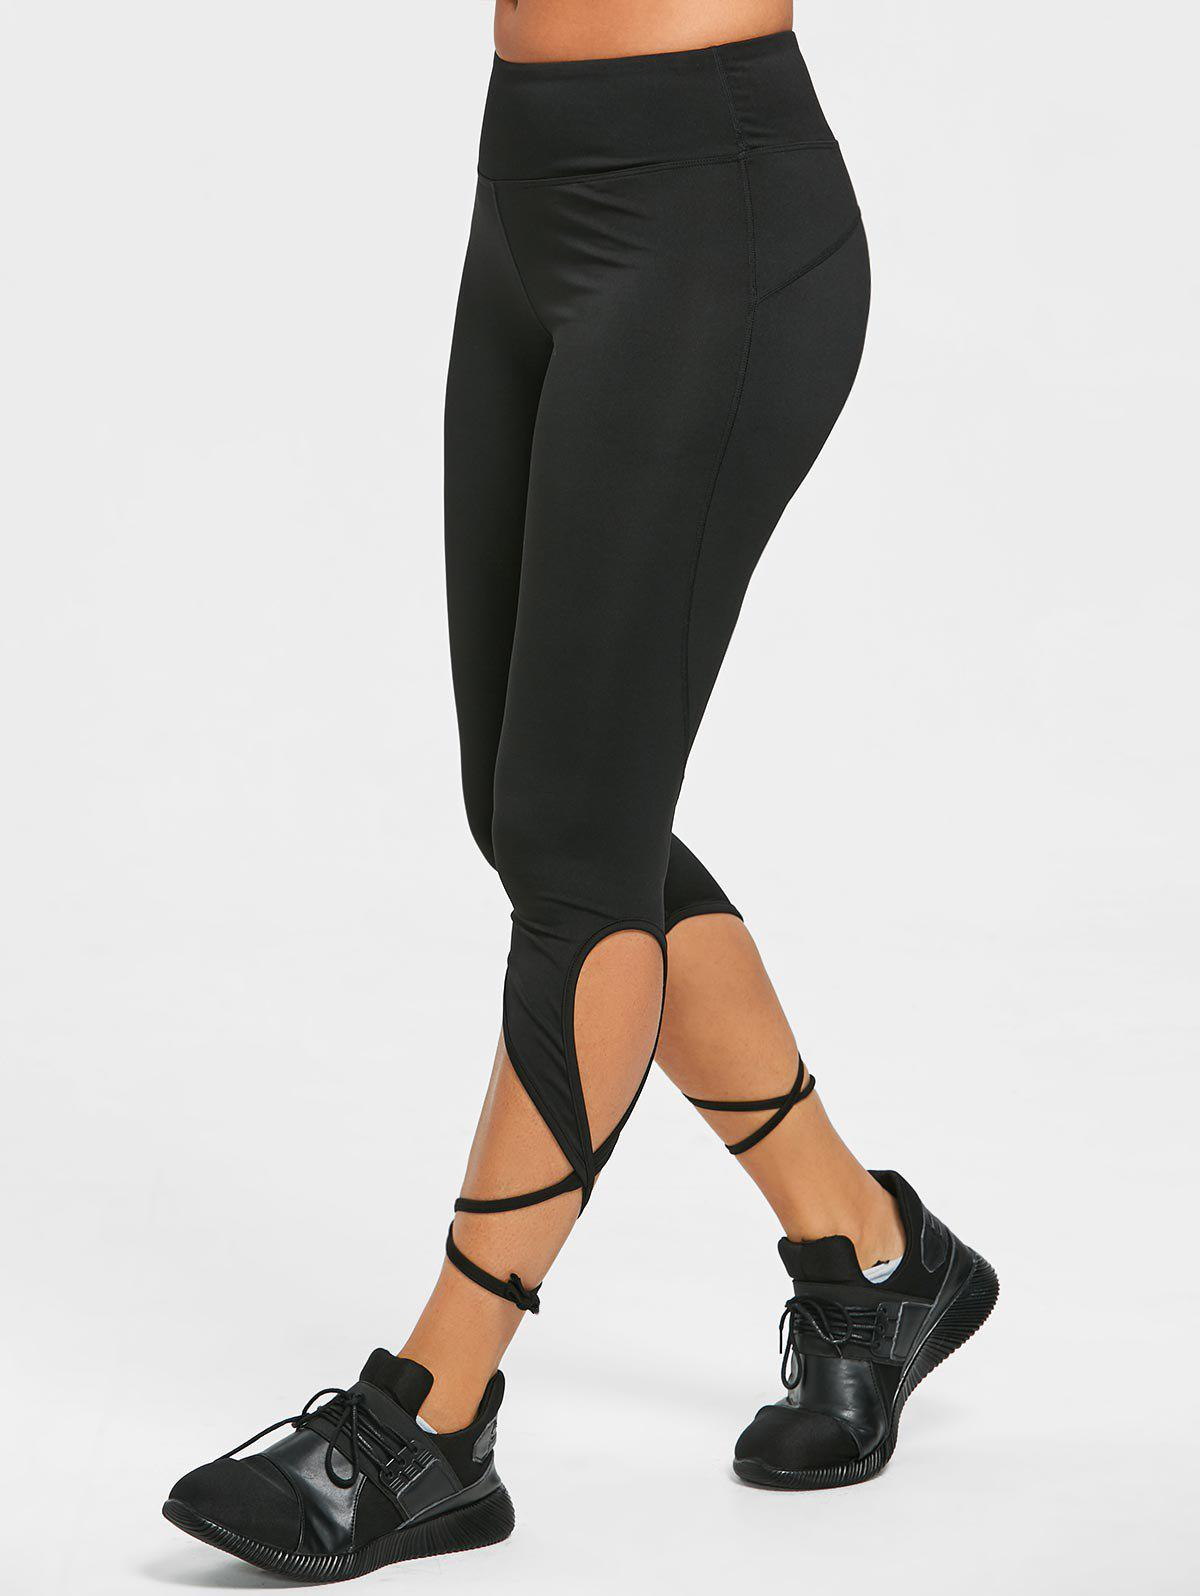 Store Wrap Tie Cropped Active Leggings